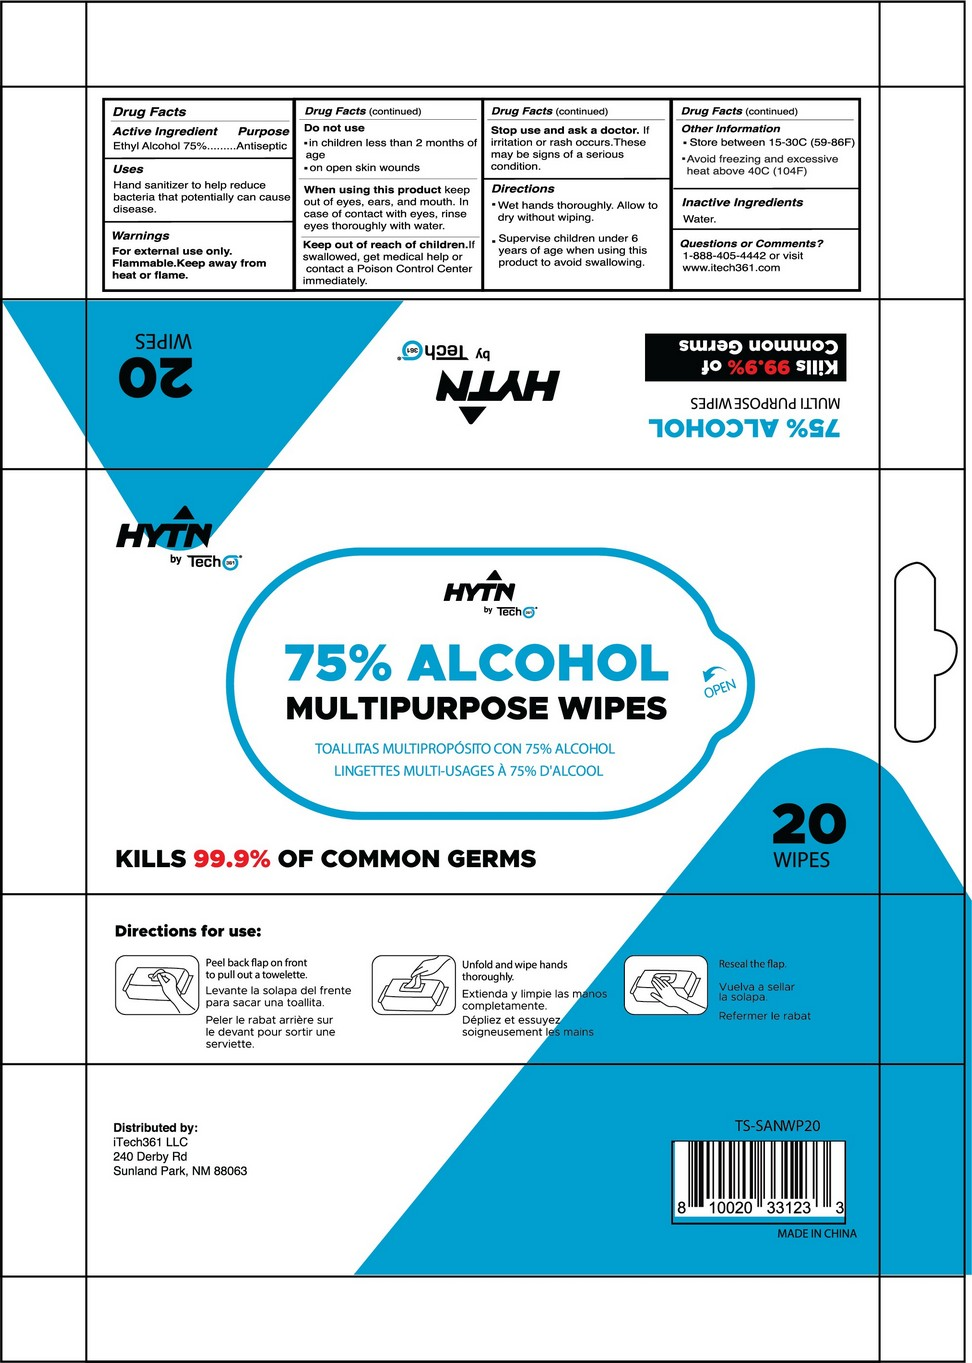 HYTN Alcohol Wipes 80